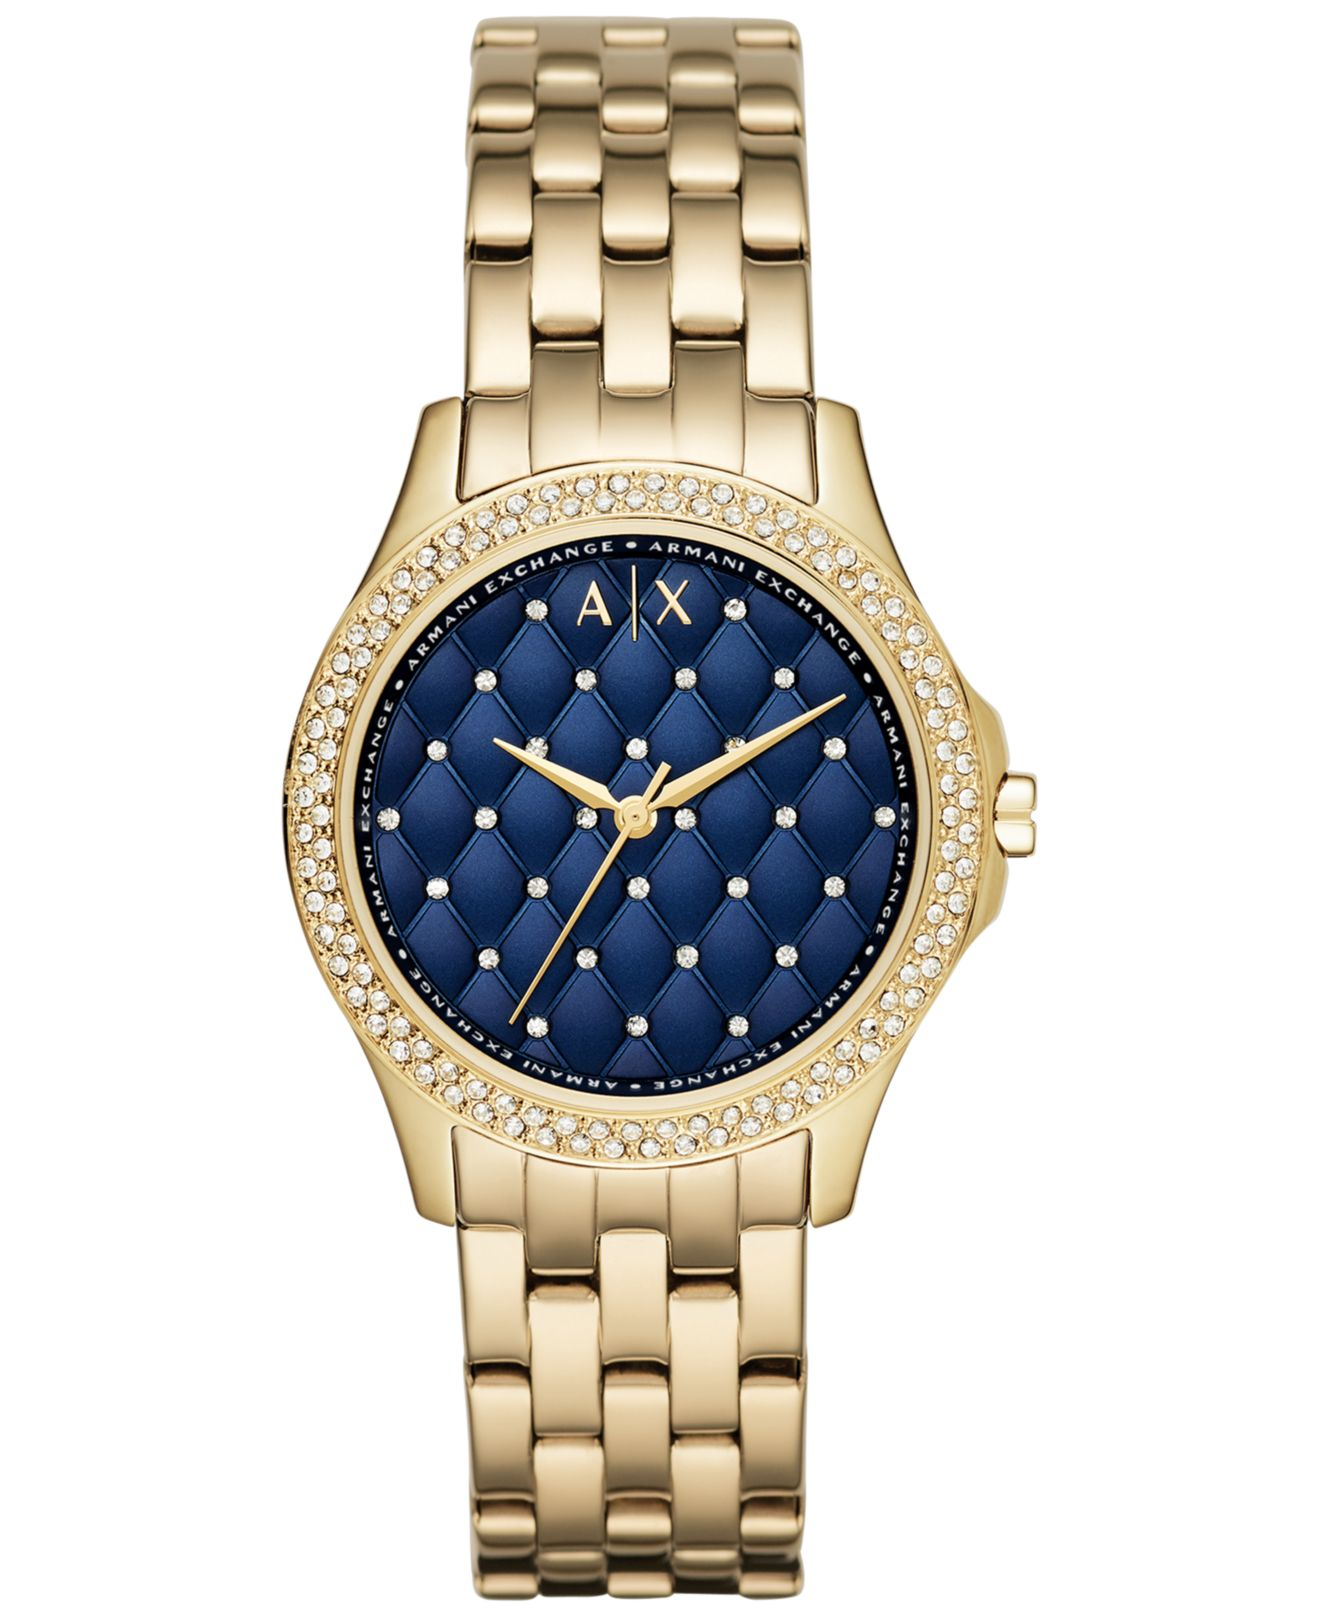 2019 year style- Exchange Armani watches for women gold pictures